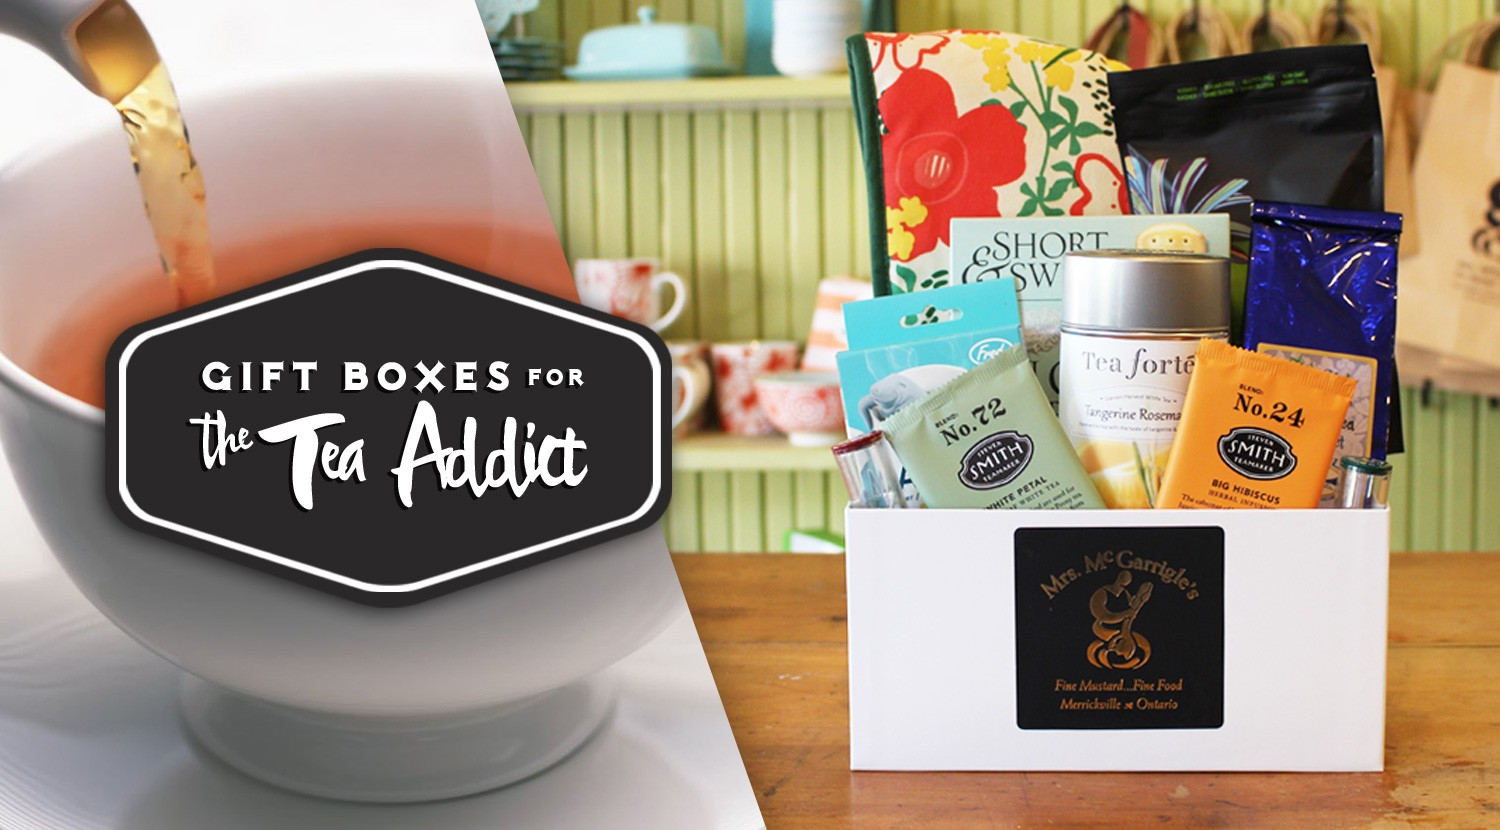 Mrs. McGarrigle's Gift Box for the Tea Addict